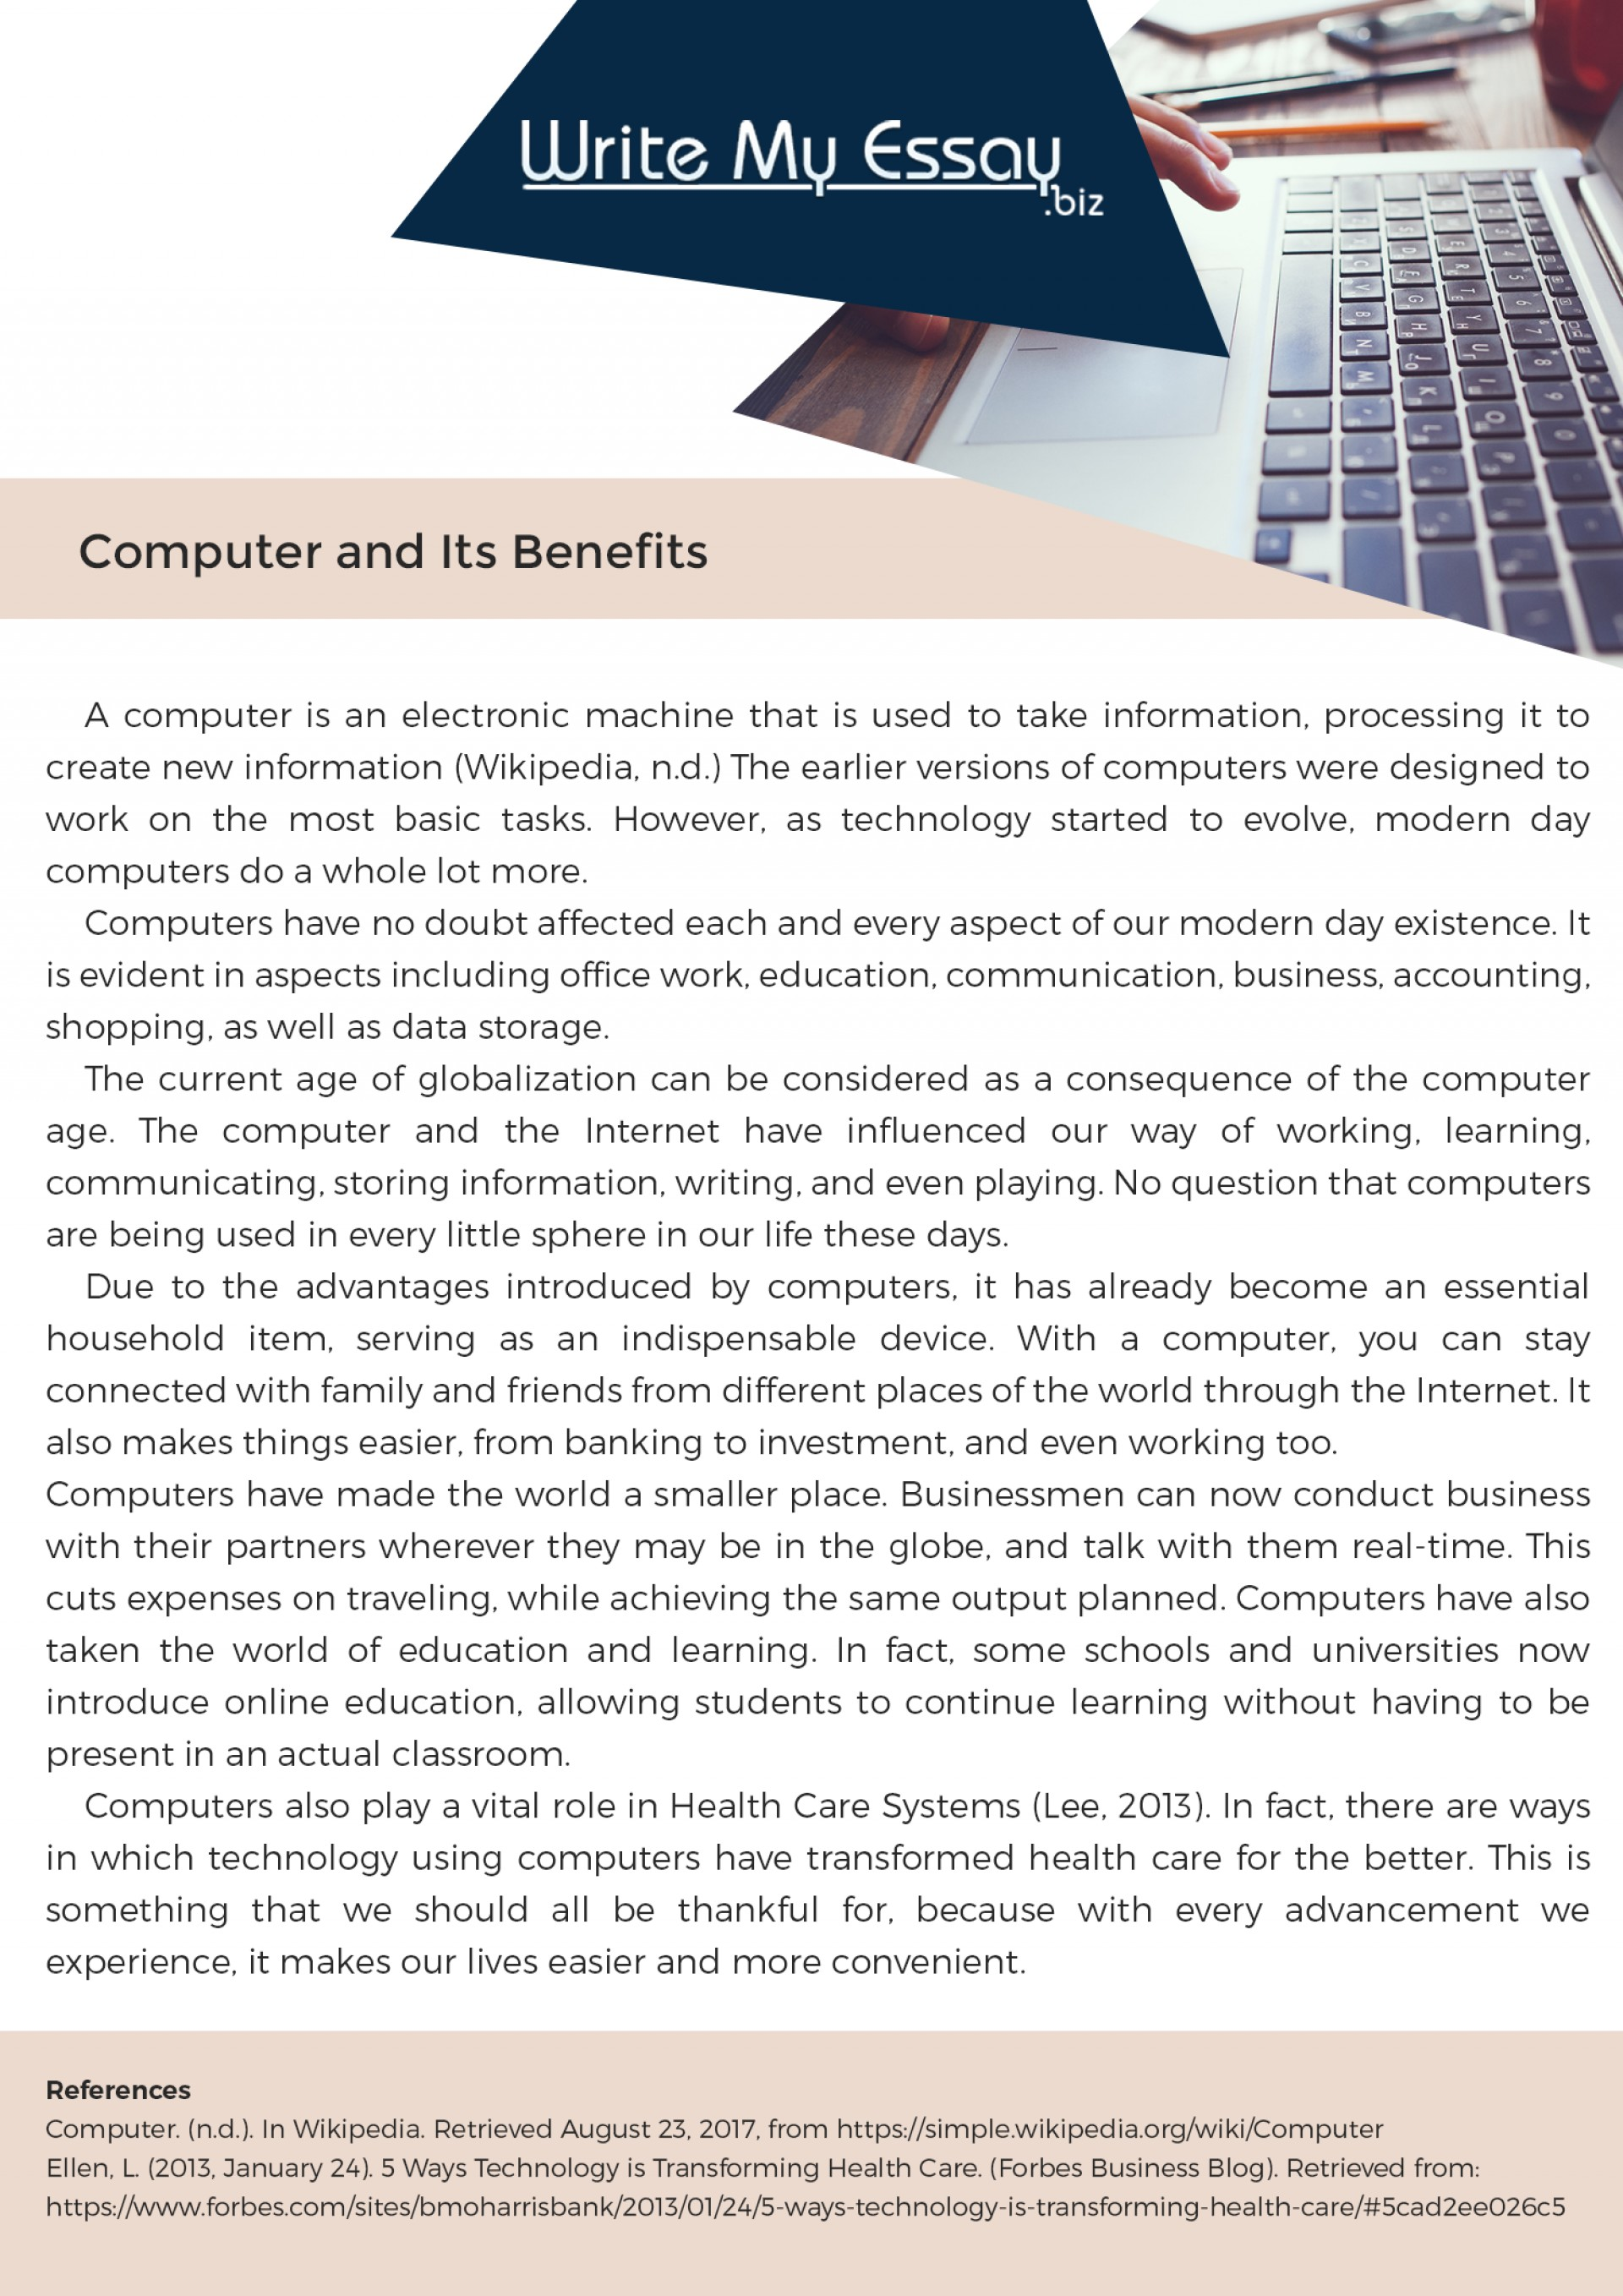 005 Essay Example On Computer And Its Benefits Fearsome In Hindi For Class 10 Security Privacy My Urdu 1920